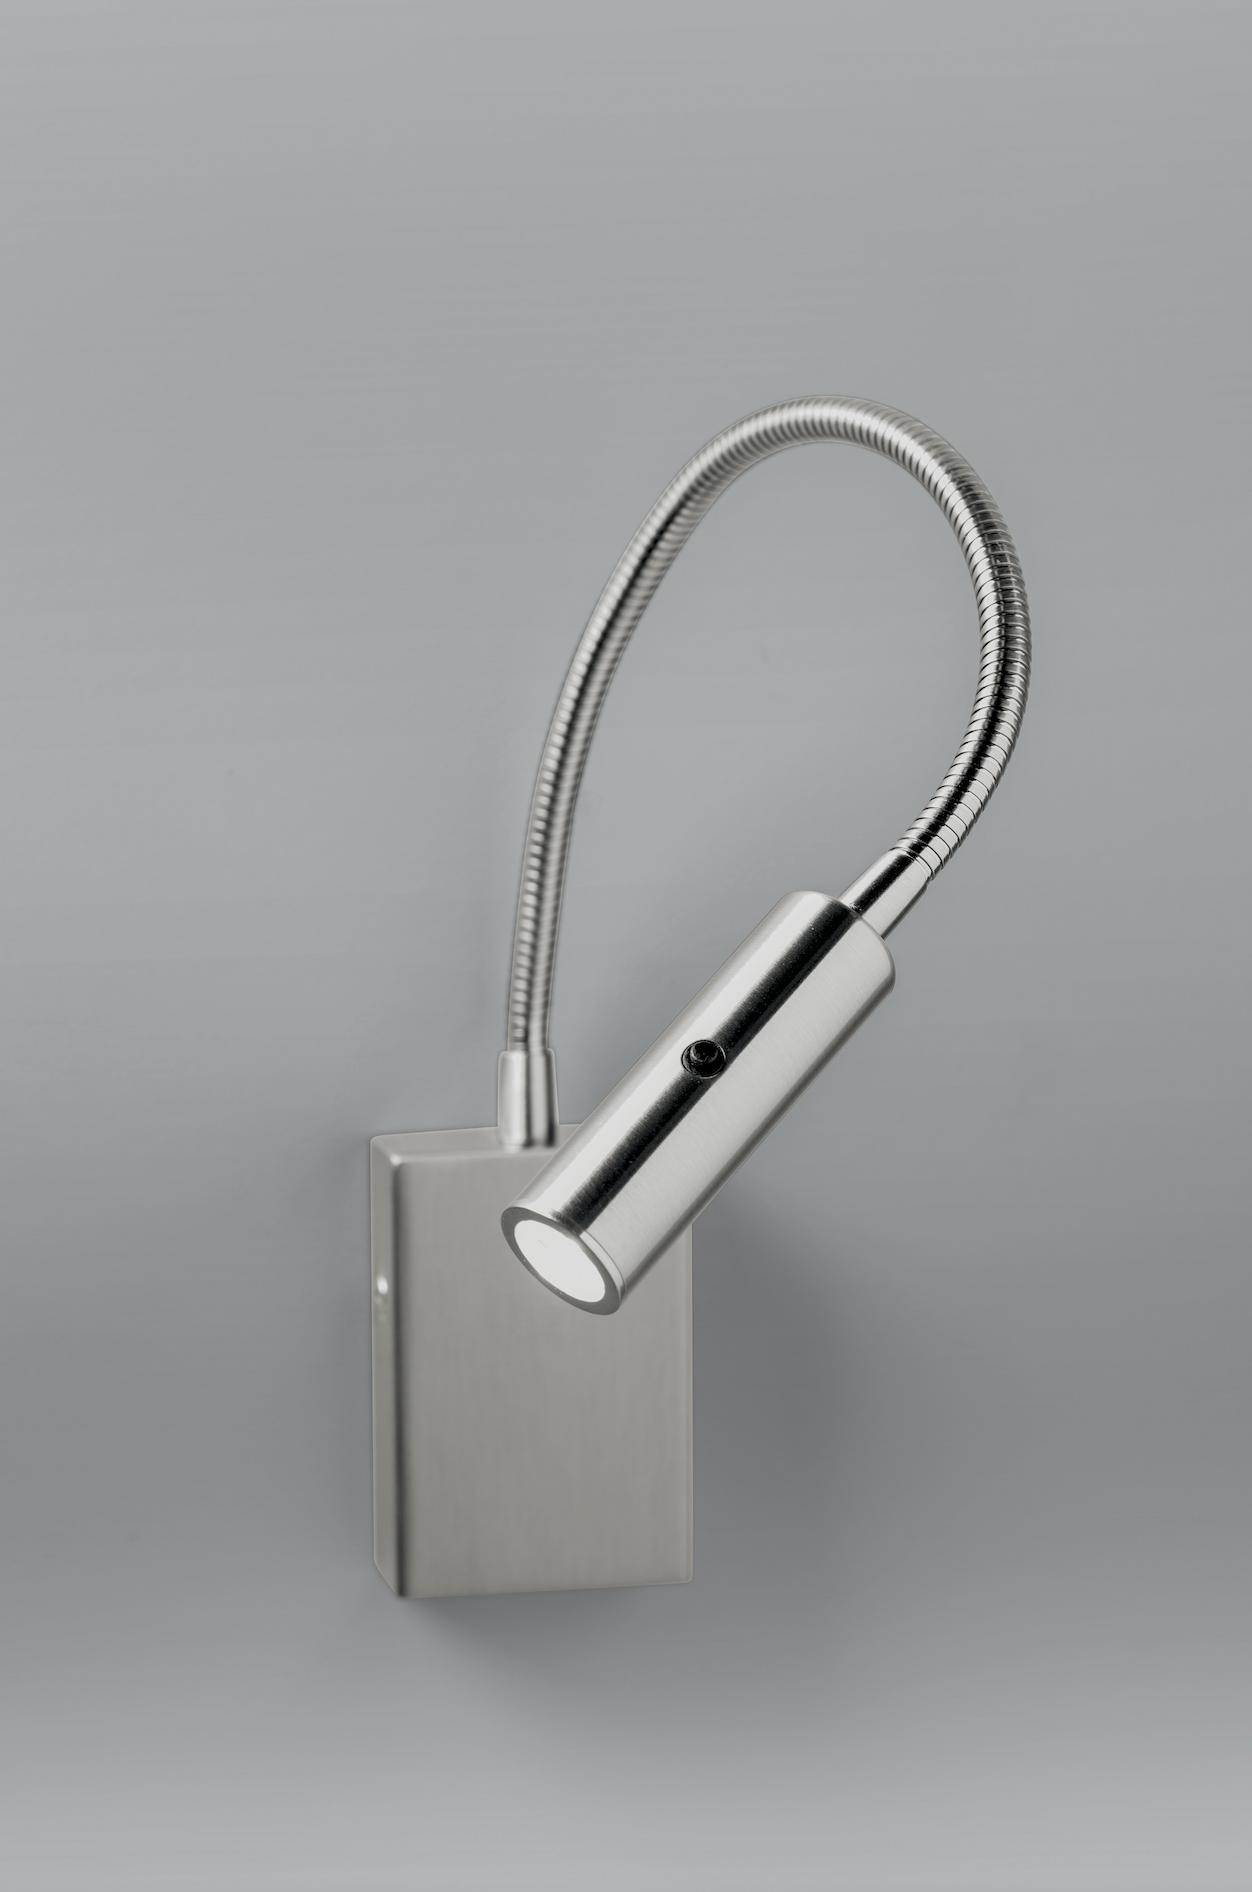 Satin Chrome Flexible Bedside Reading Light with Switch on Head - ID 10430